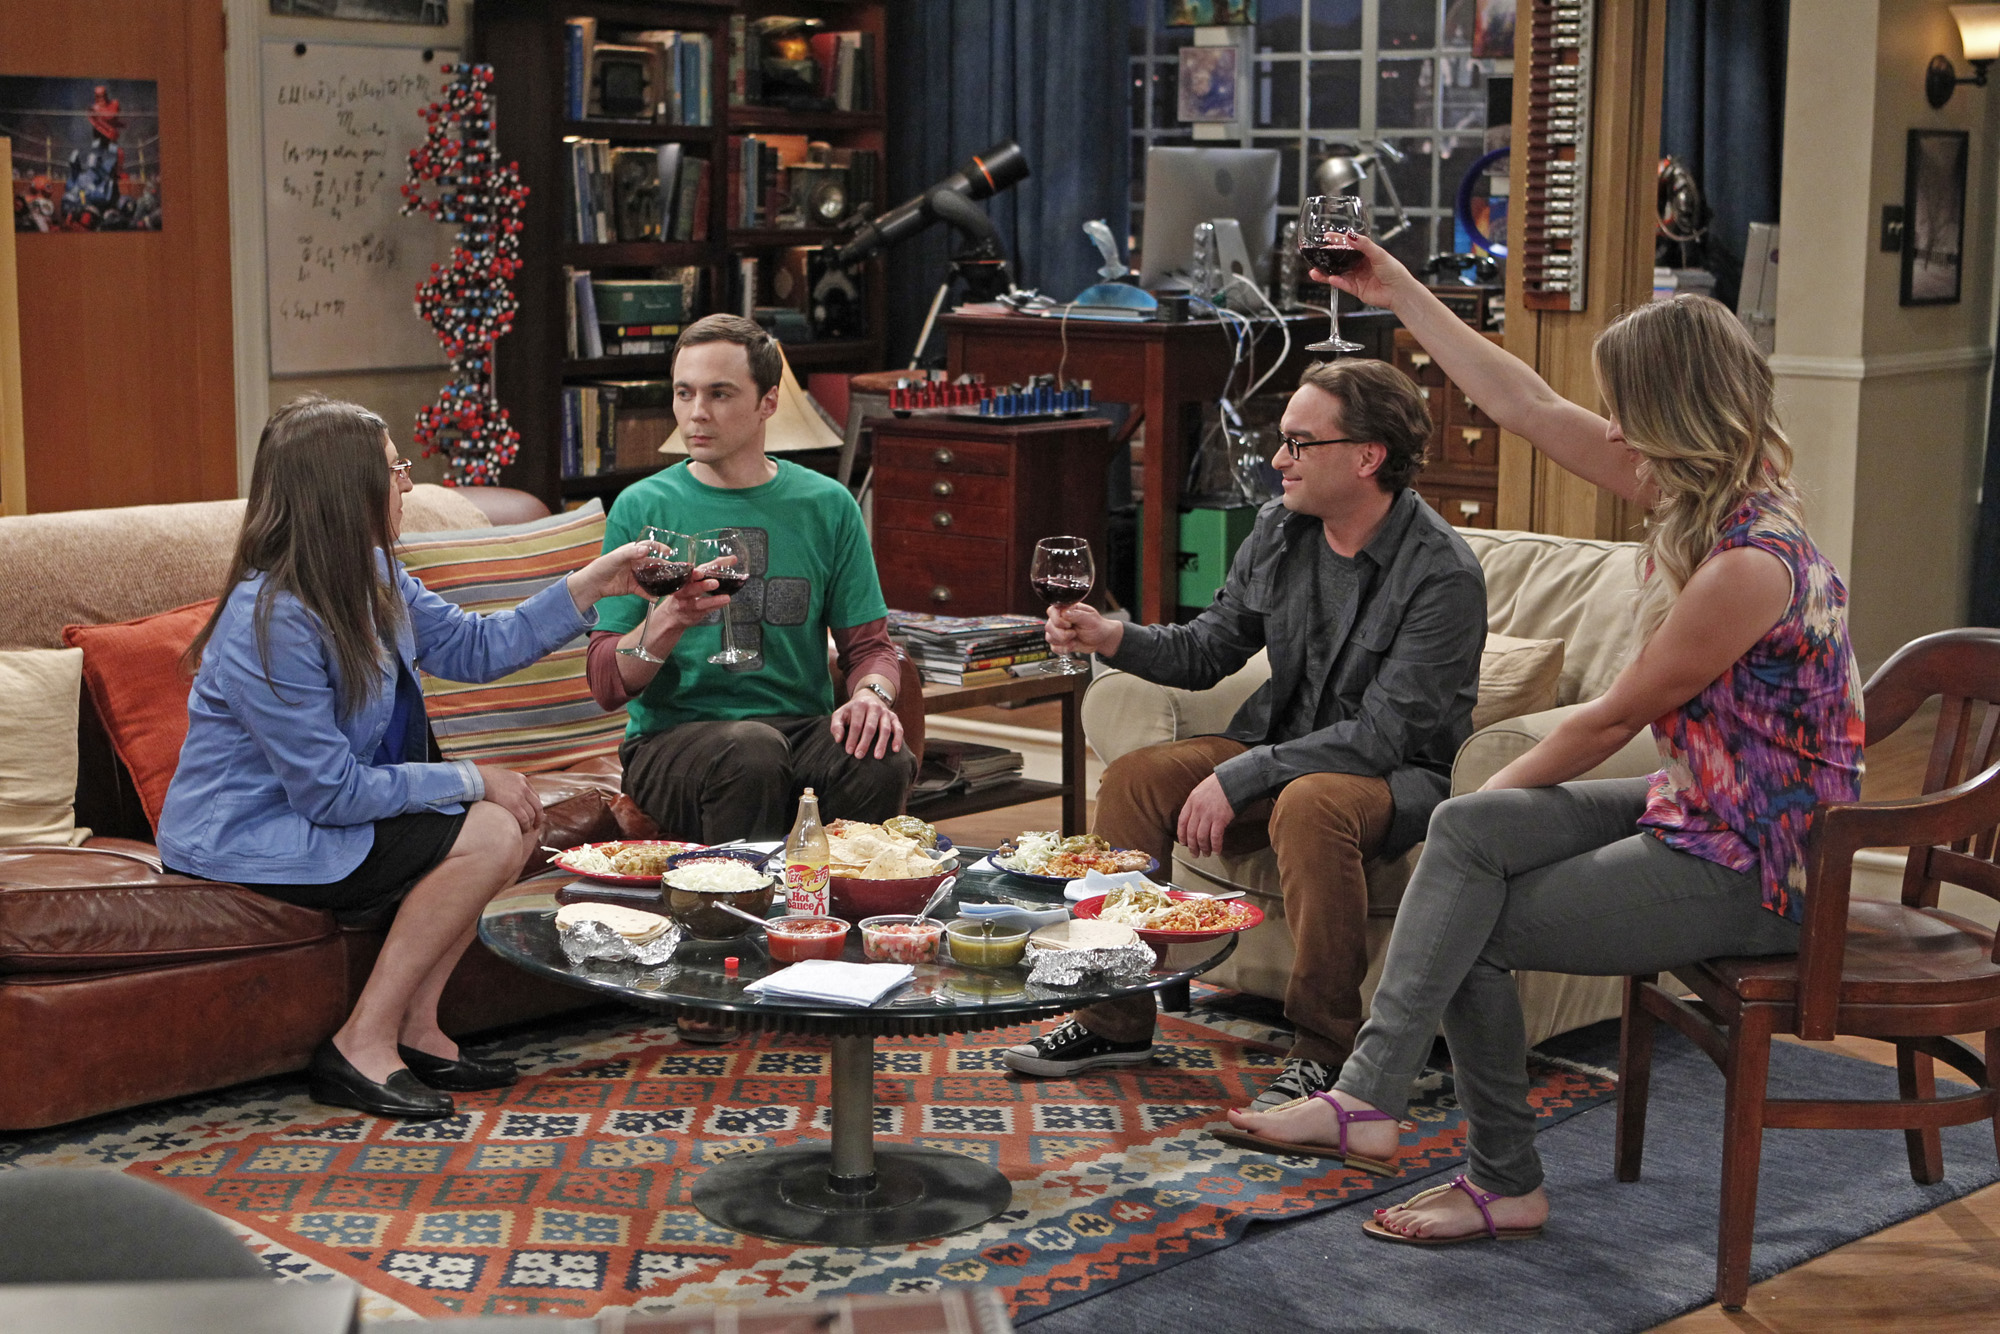 Sheldon faces a personal crisis after deciding he's wasting his time with string theory, onThe Big Bang Theory on April 10, 2013.